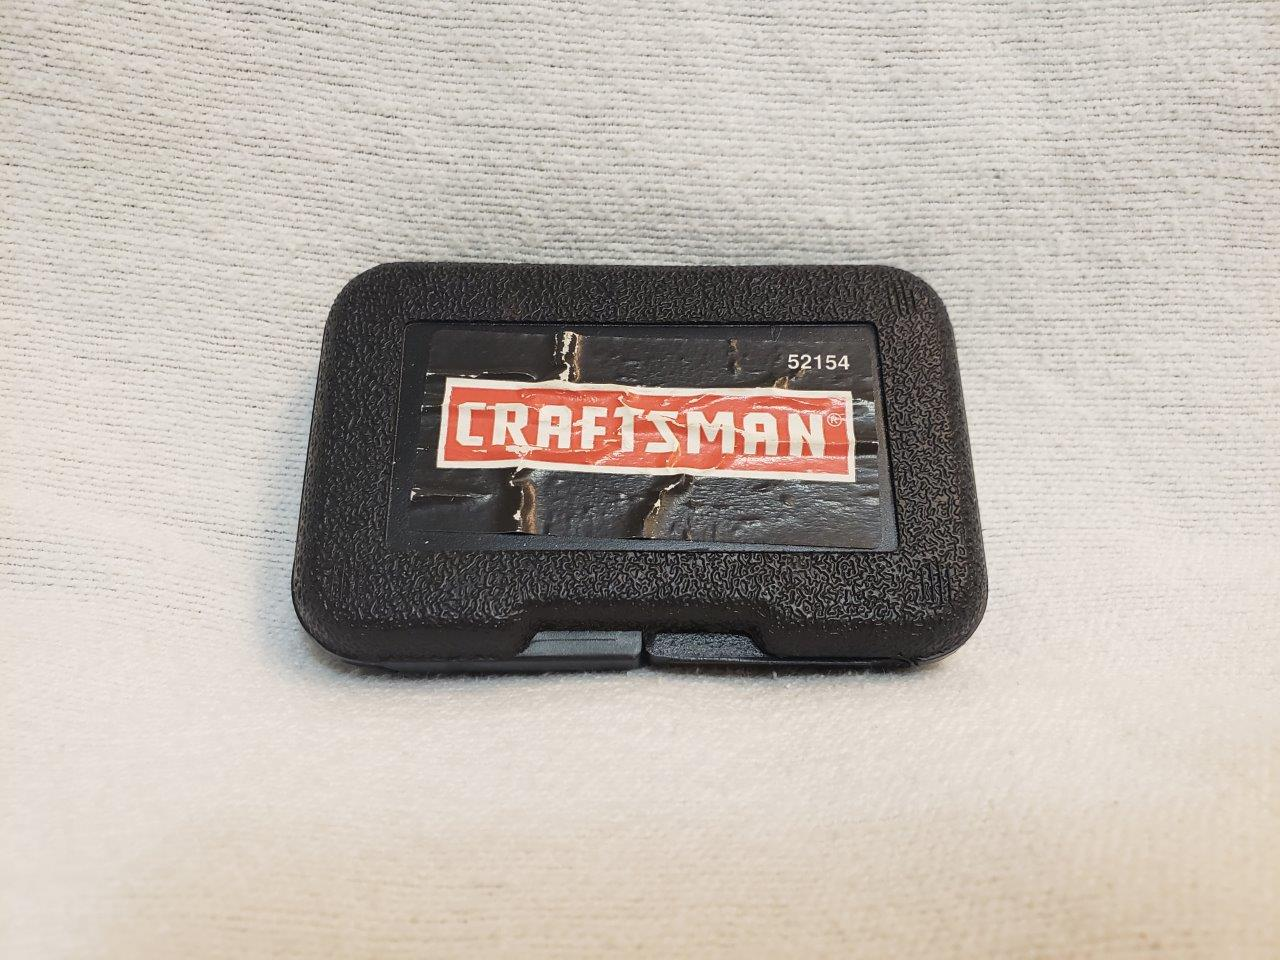 Craftsman Screw-Out Screw Removers 52154 3 Piece Set in Plastic Case